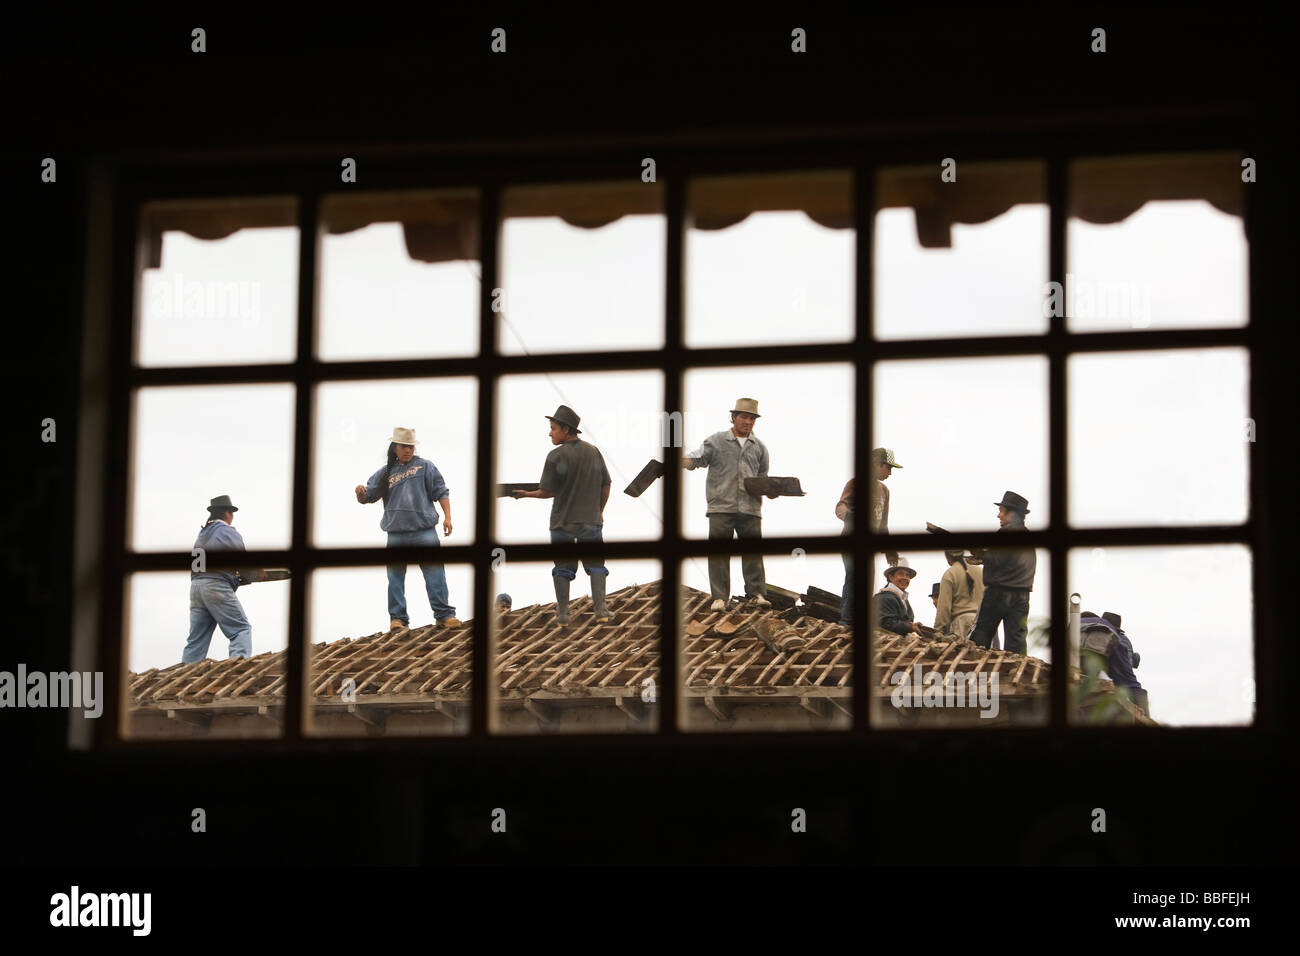 Indigenous community working together to rebuild church - Peguche, Imbabura Province, Ecuador - Stock Image